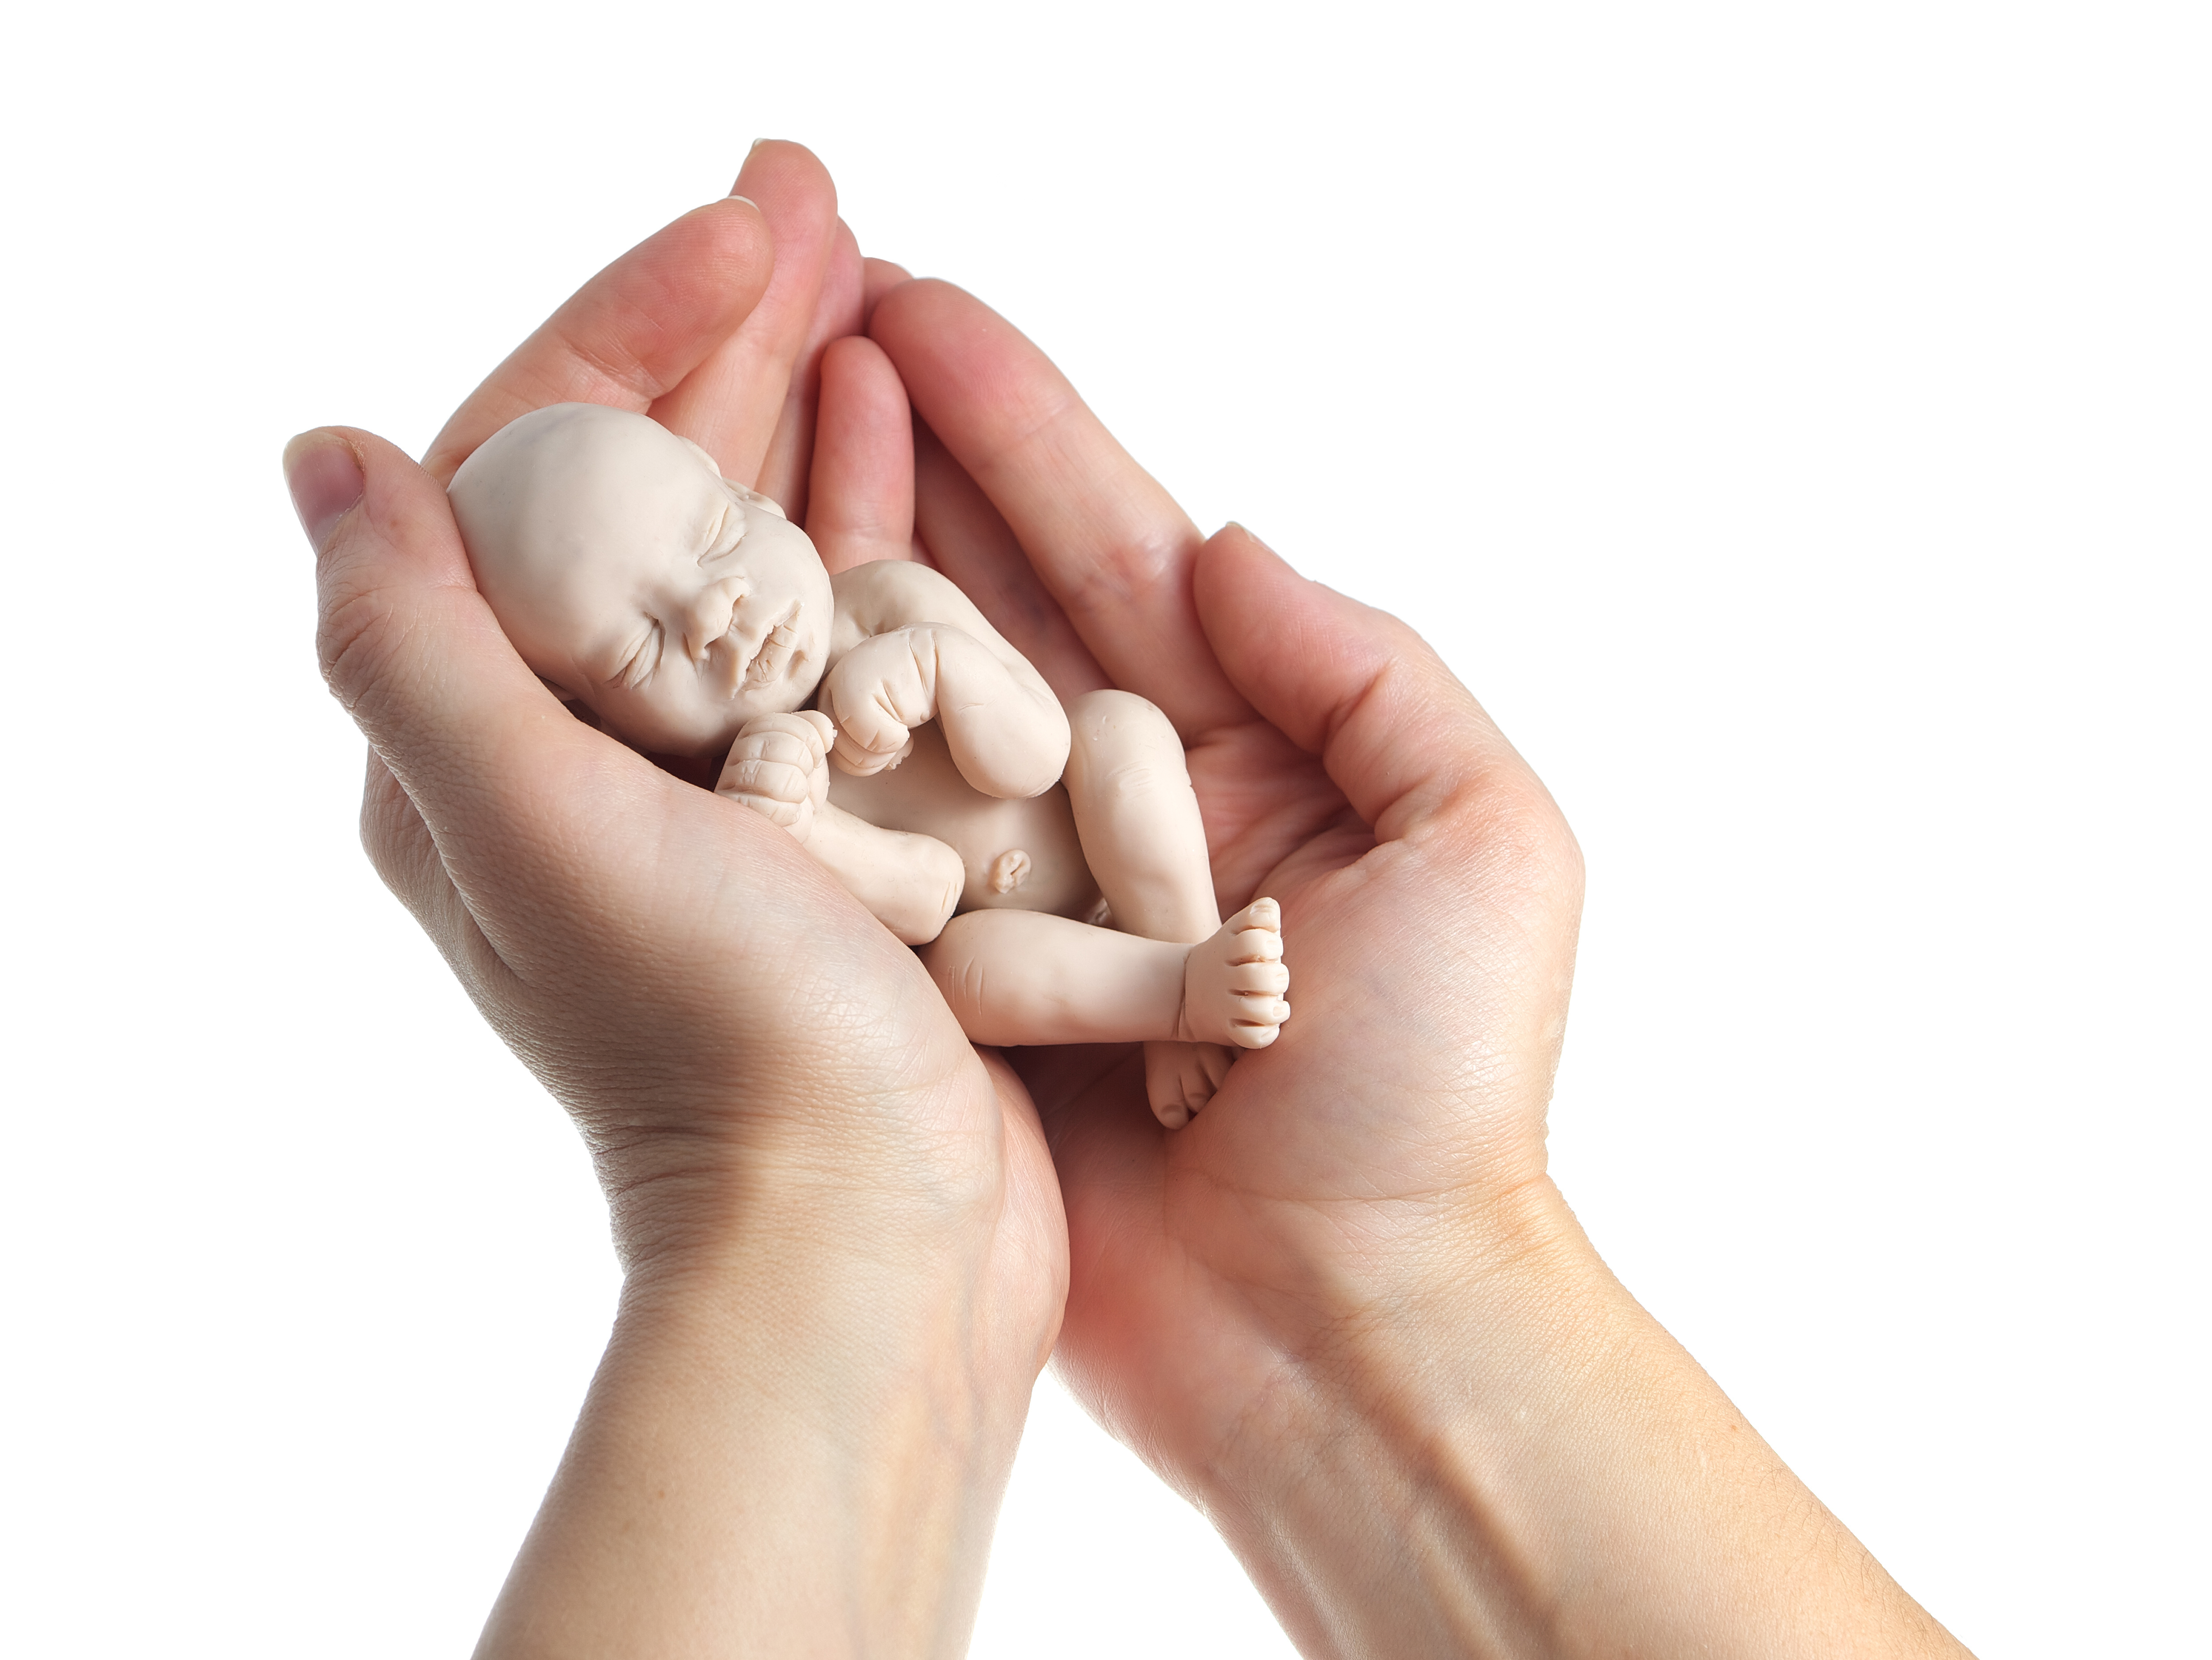 Embryo in a woman's hand shown for illustration purposes | Stock image, St. George News